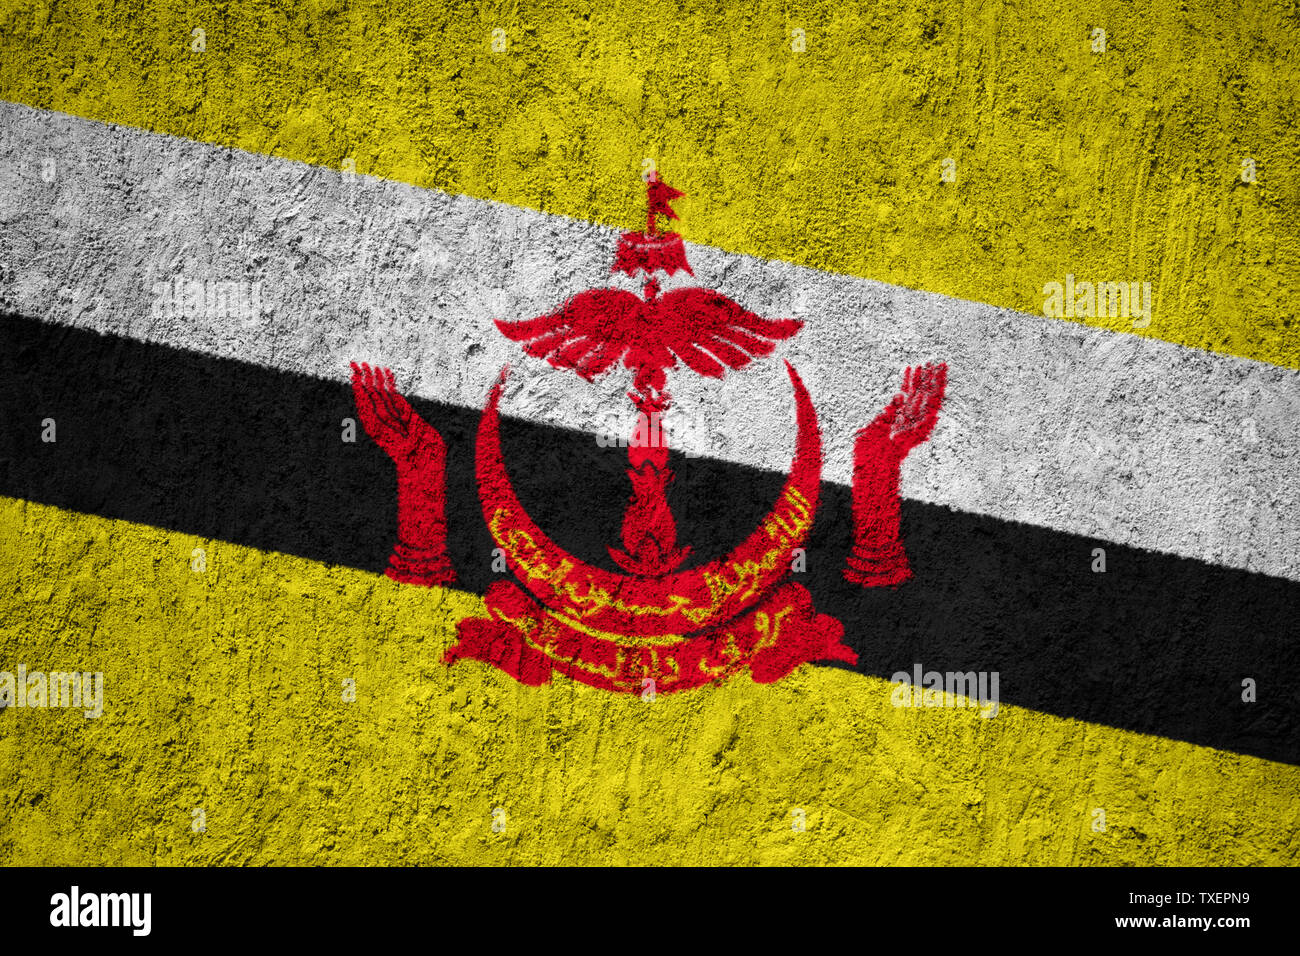 Brunei flag painted on the cracked grunge concrete wall - Stock Image